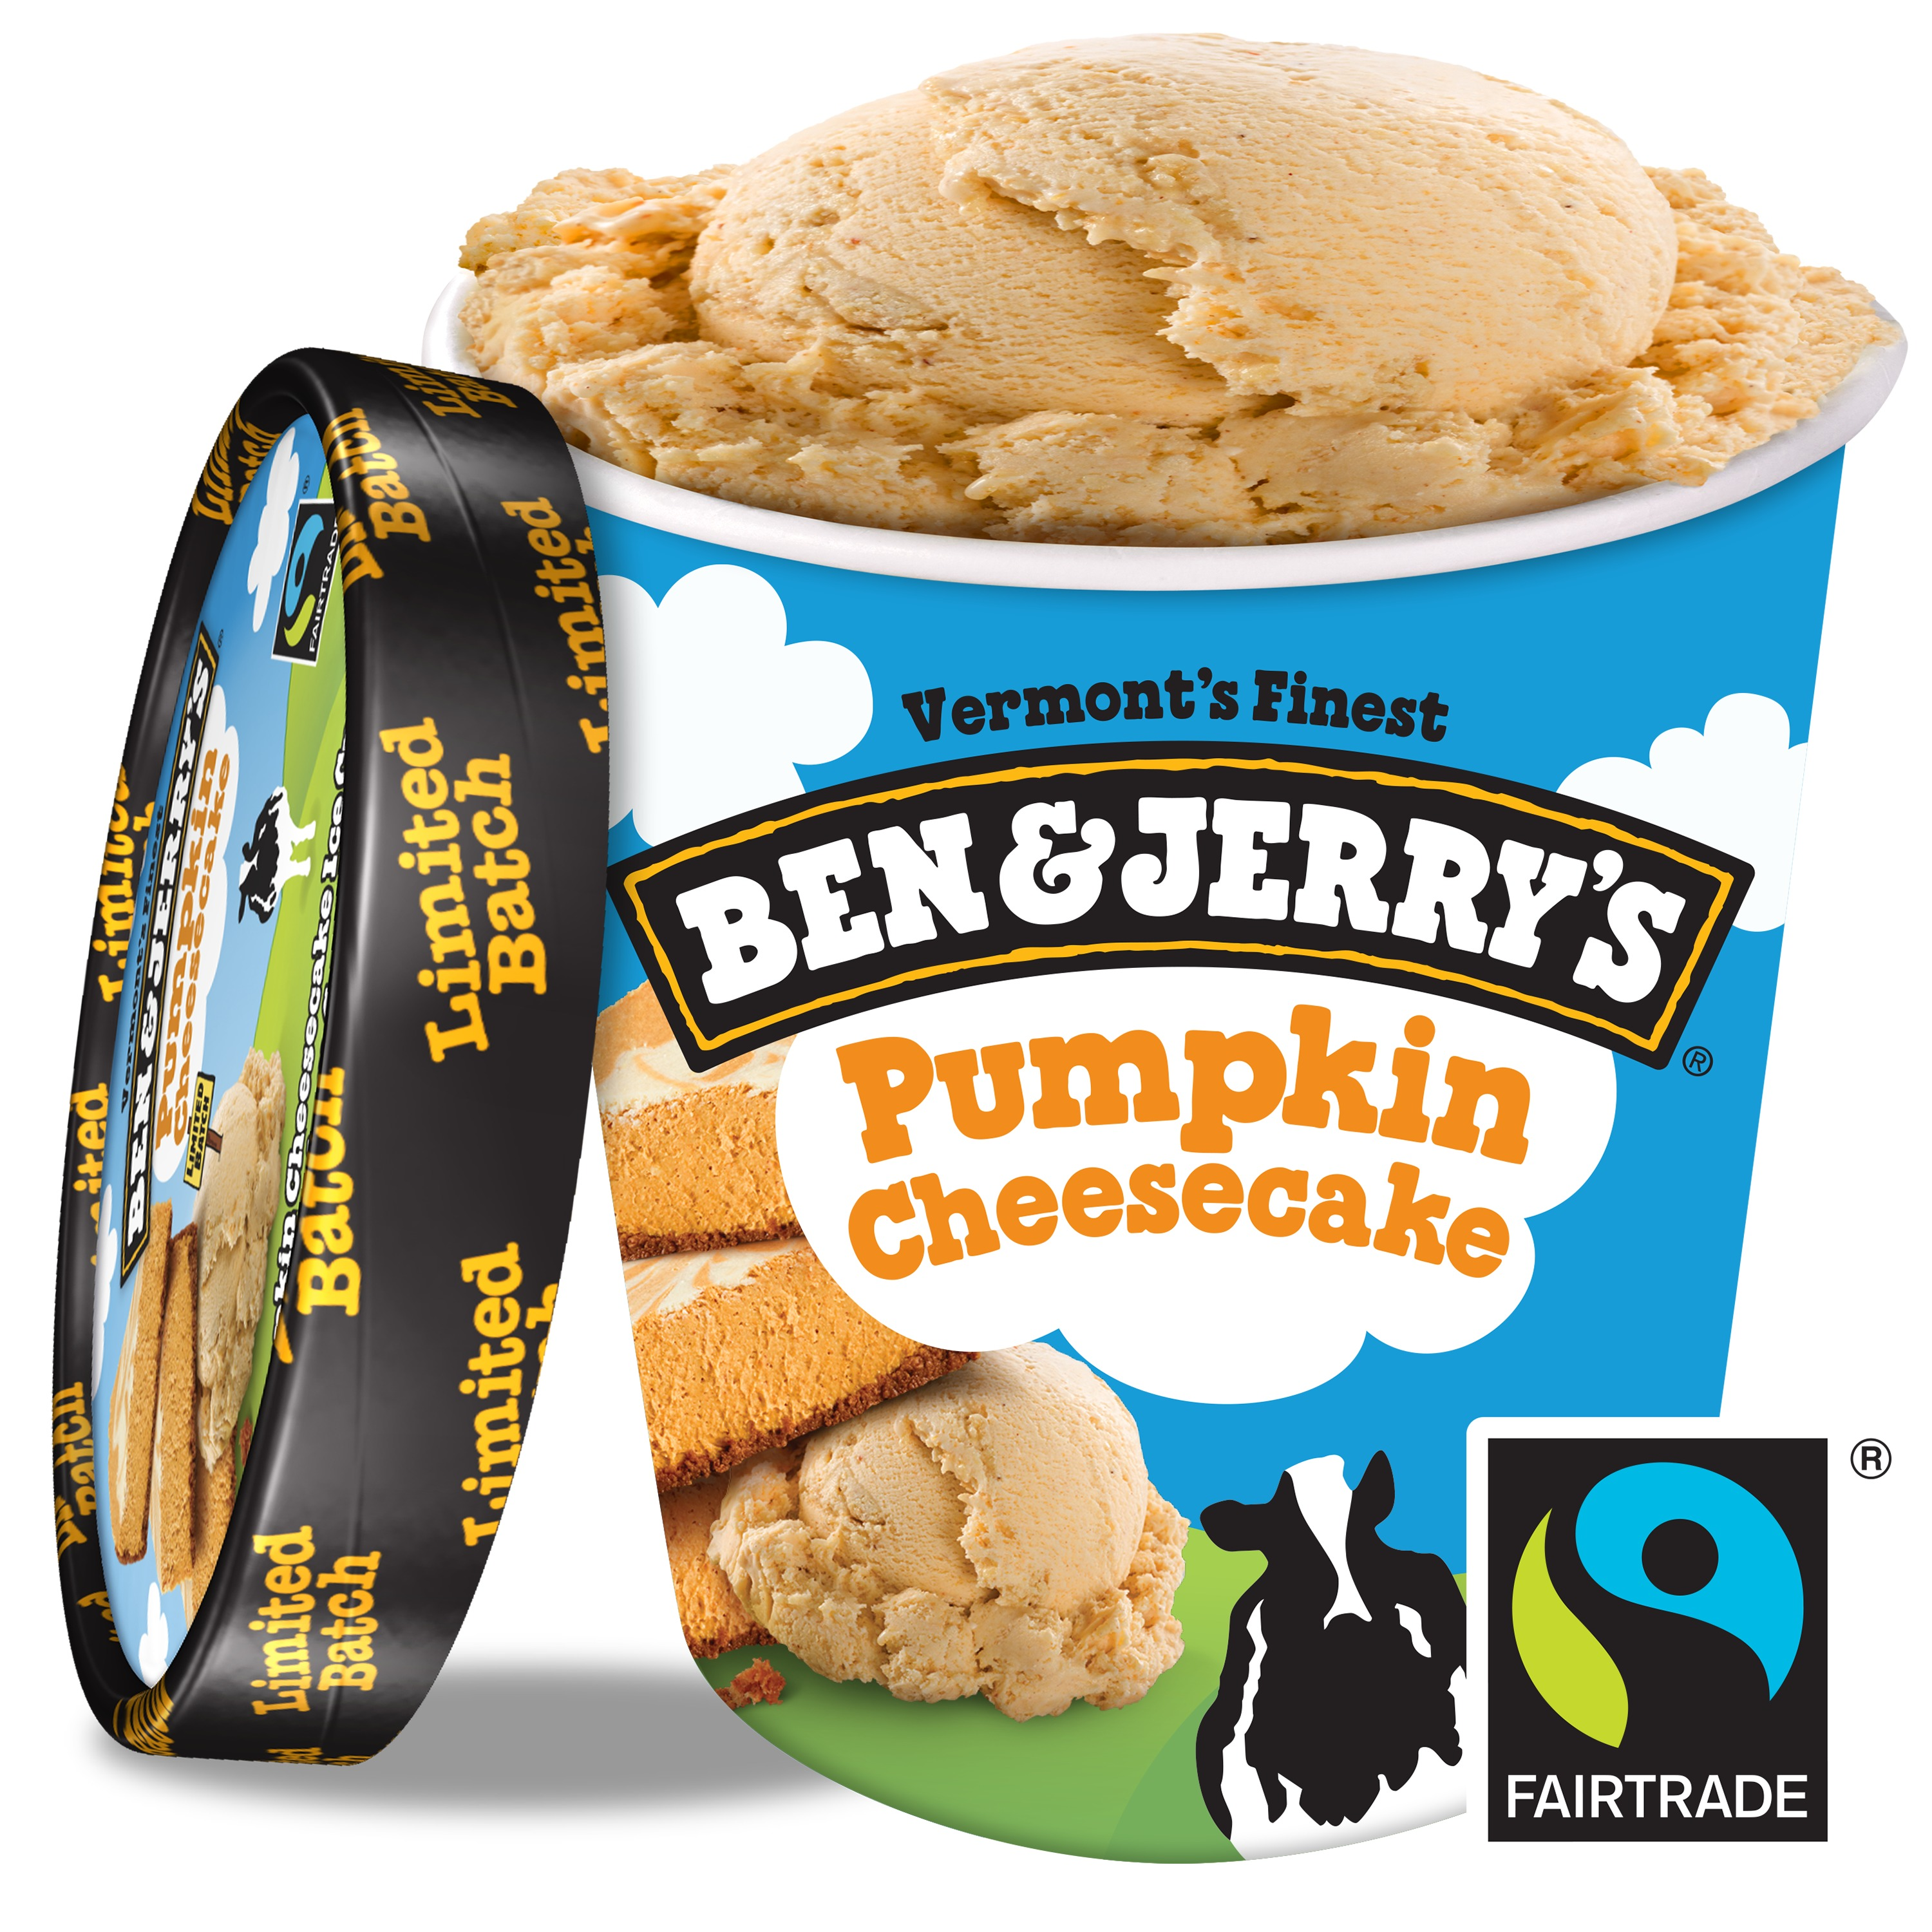 Ben & Jerry's Pumpkin Cheesecake Ice Cream, 16 oz